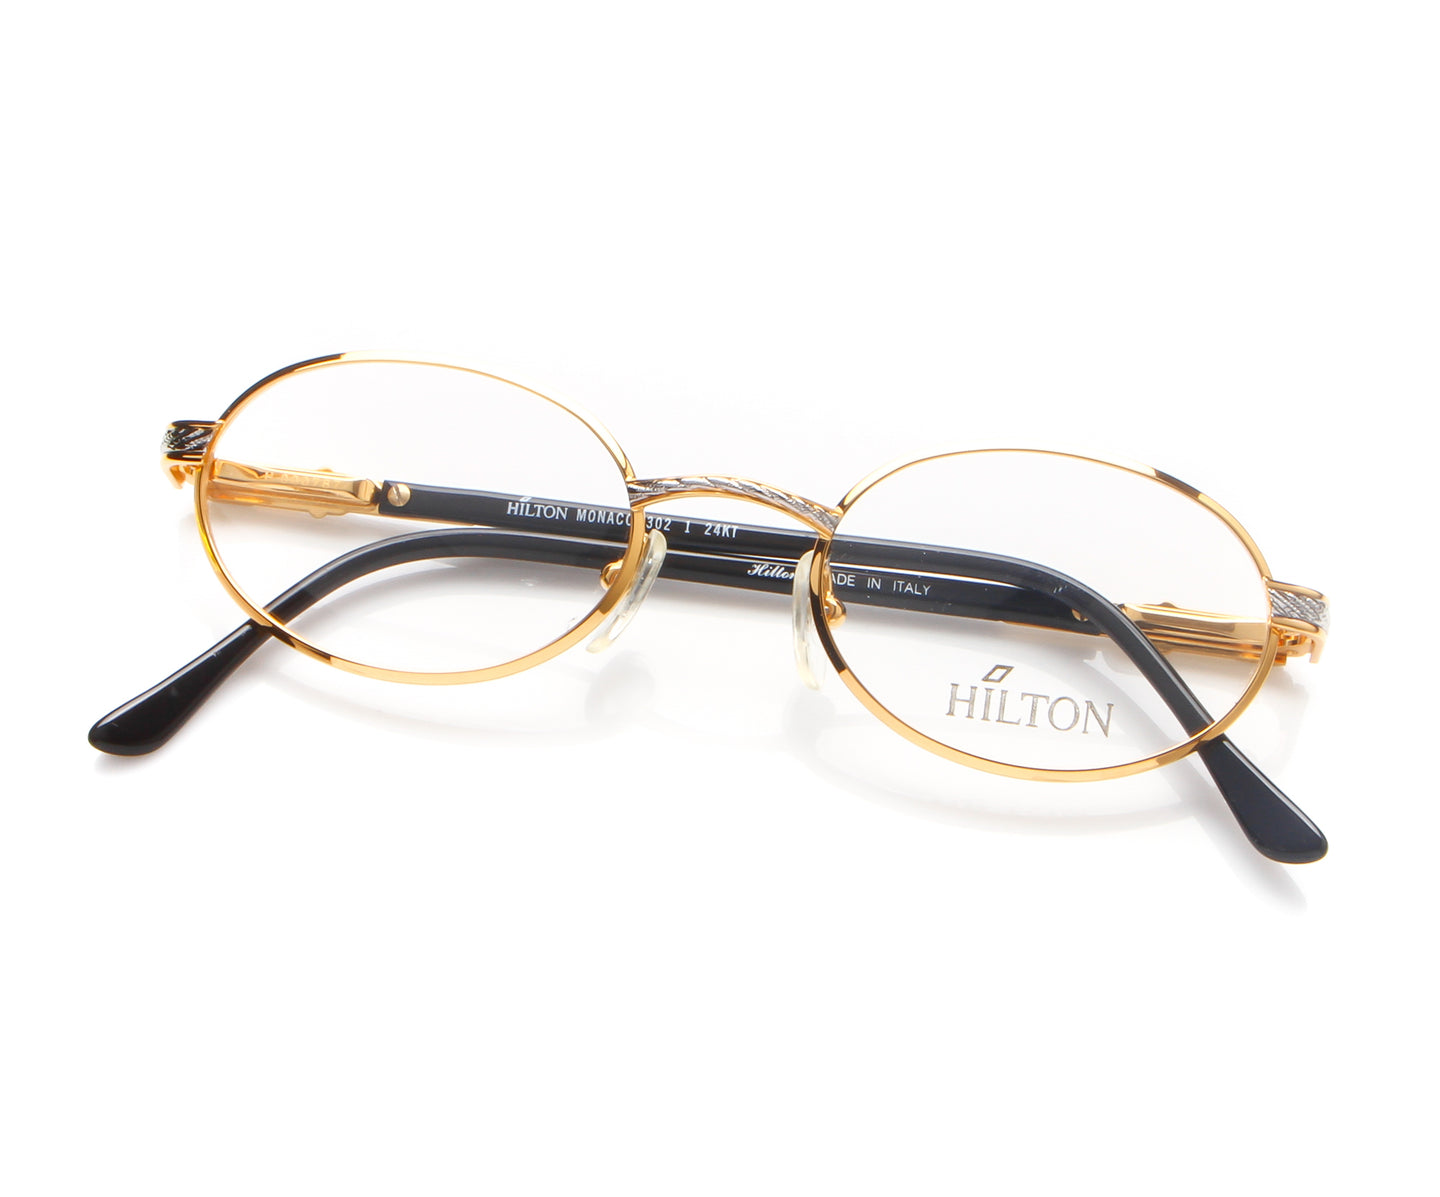 Vintage Hilton Monaco 302 1 24KT Thumbnail, Hilton , glasses frames, eyeglasses online, eyeglass frames, mens glasses, womens glasses, buy glasses online, designer eyeglasses, vintage sunglasses, retro sunglasses, vintage glasses, sunglass, eyeglass, glasses, lens, vintage frames company, vf